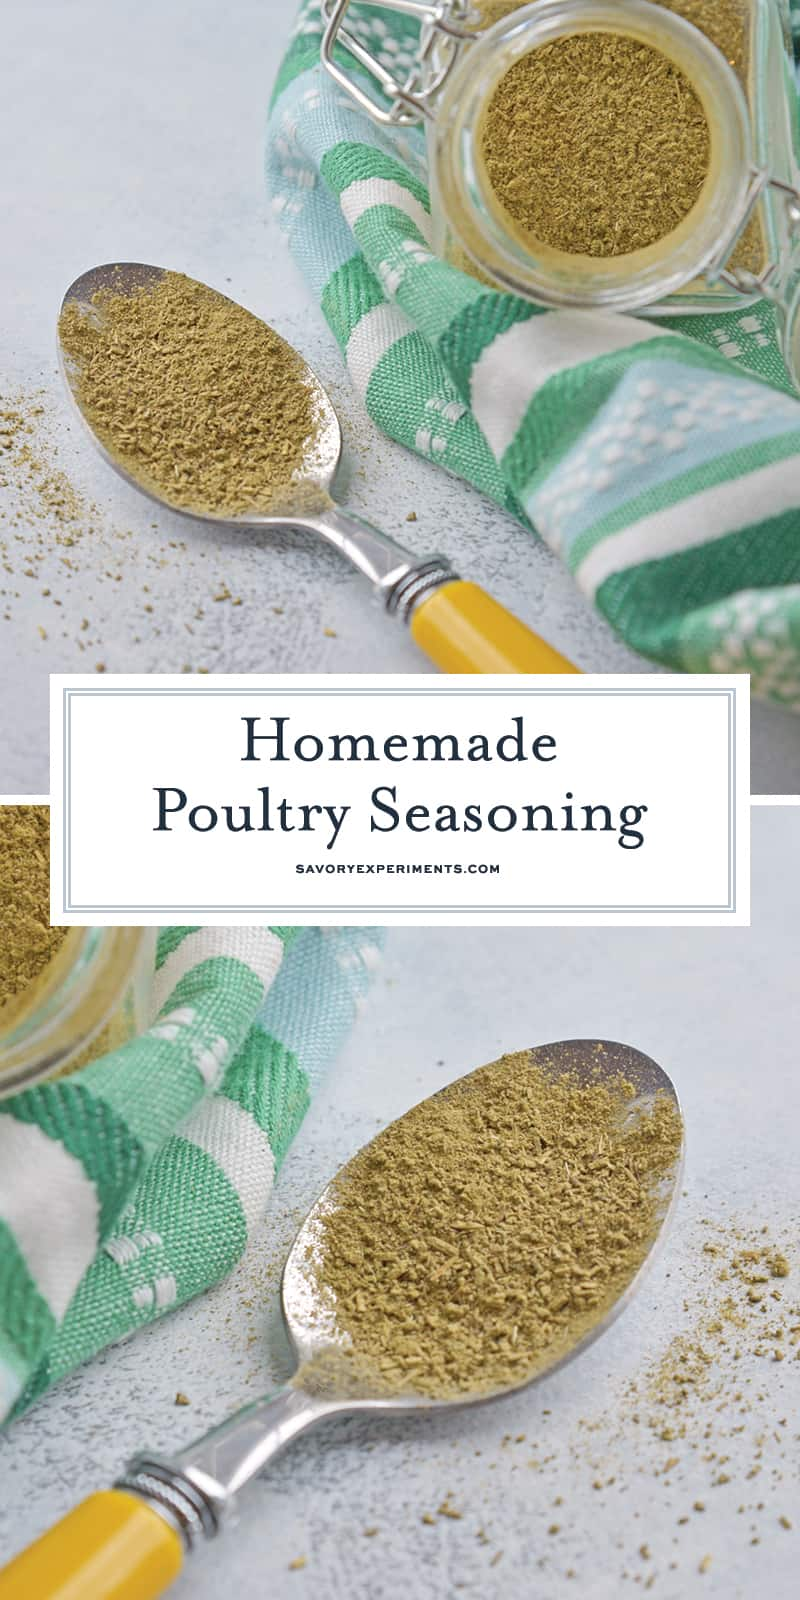 Homemade Poultry Seasoning is super easy to make, you probably already have all the ingredients in your pantry! Season chicken, beef, seafood and more! #poultryseasoning #homemadespices www.savoryexperiments.com